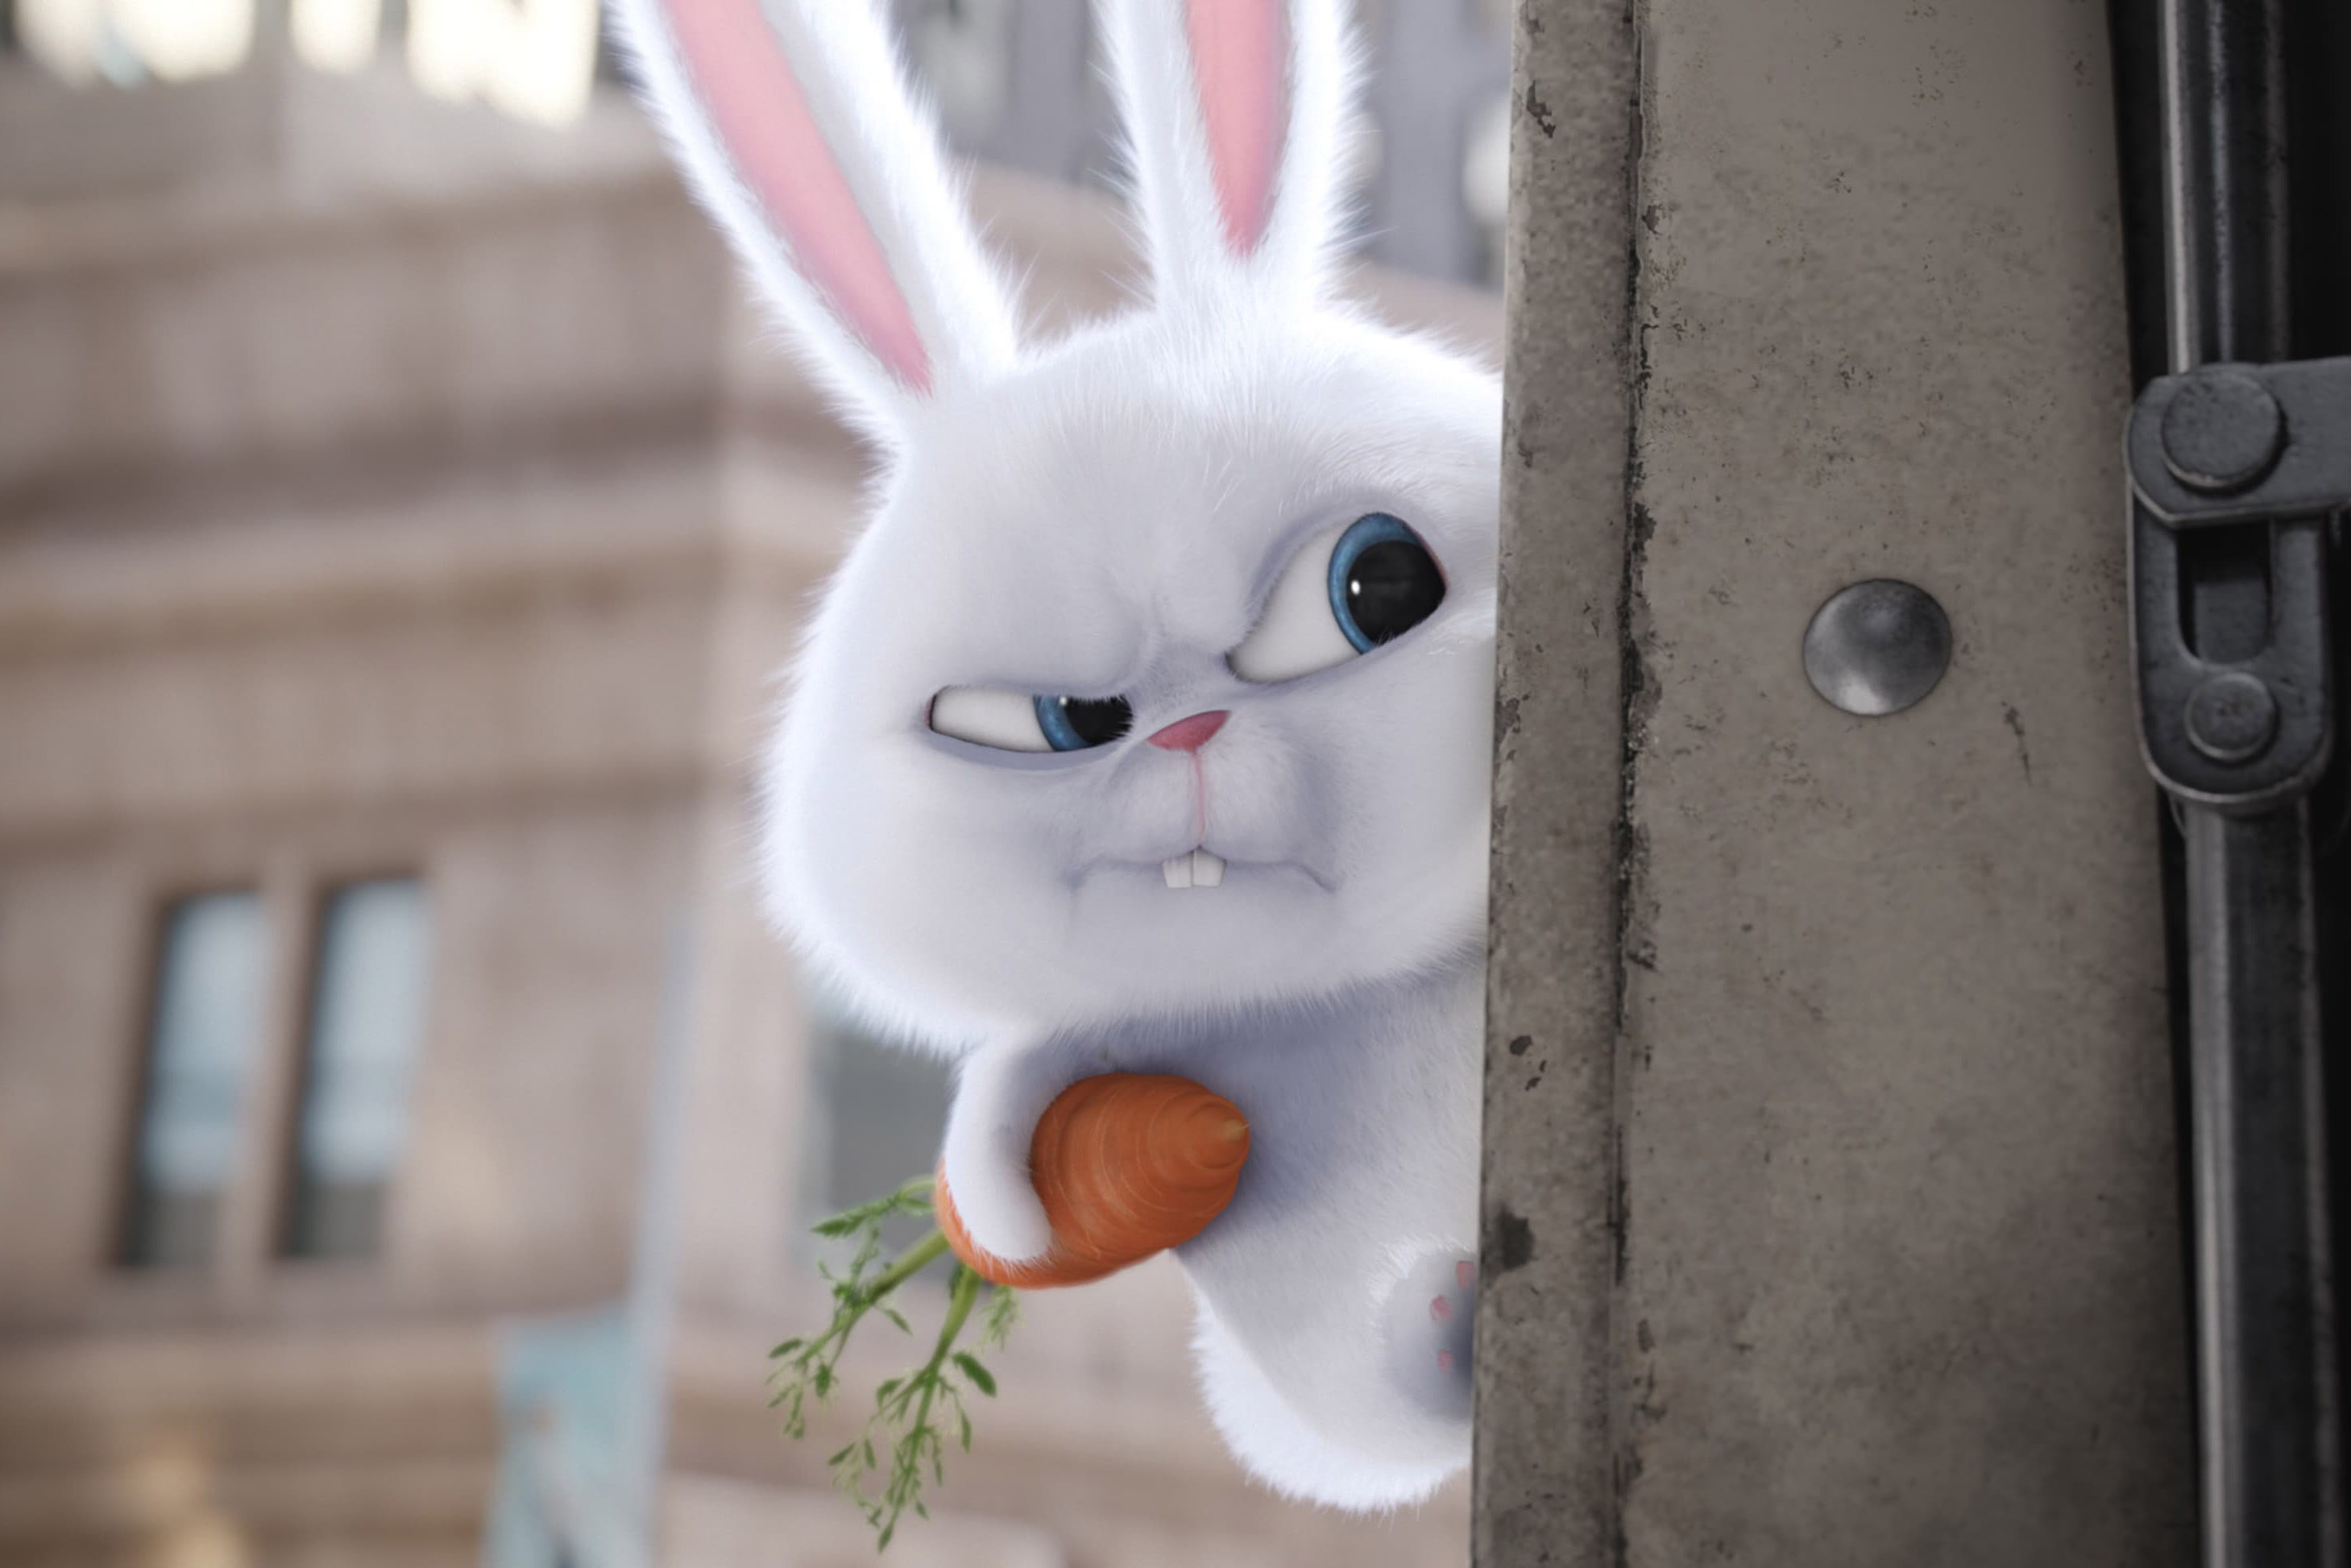 The secret life of pets rabbit angry wallpaper